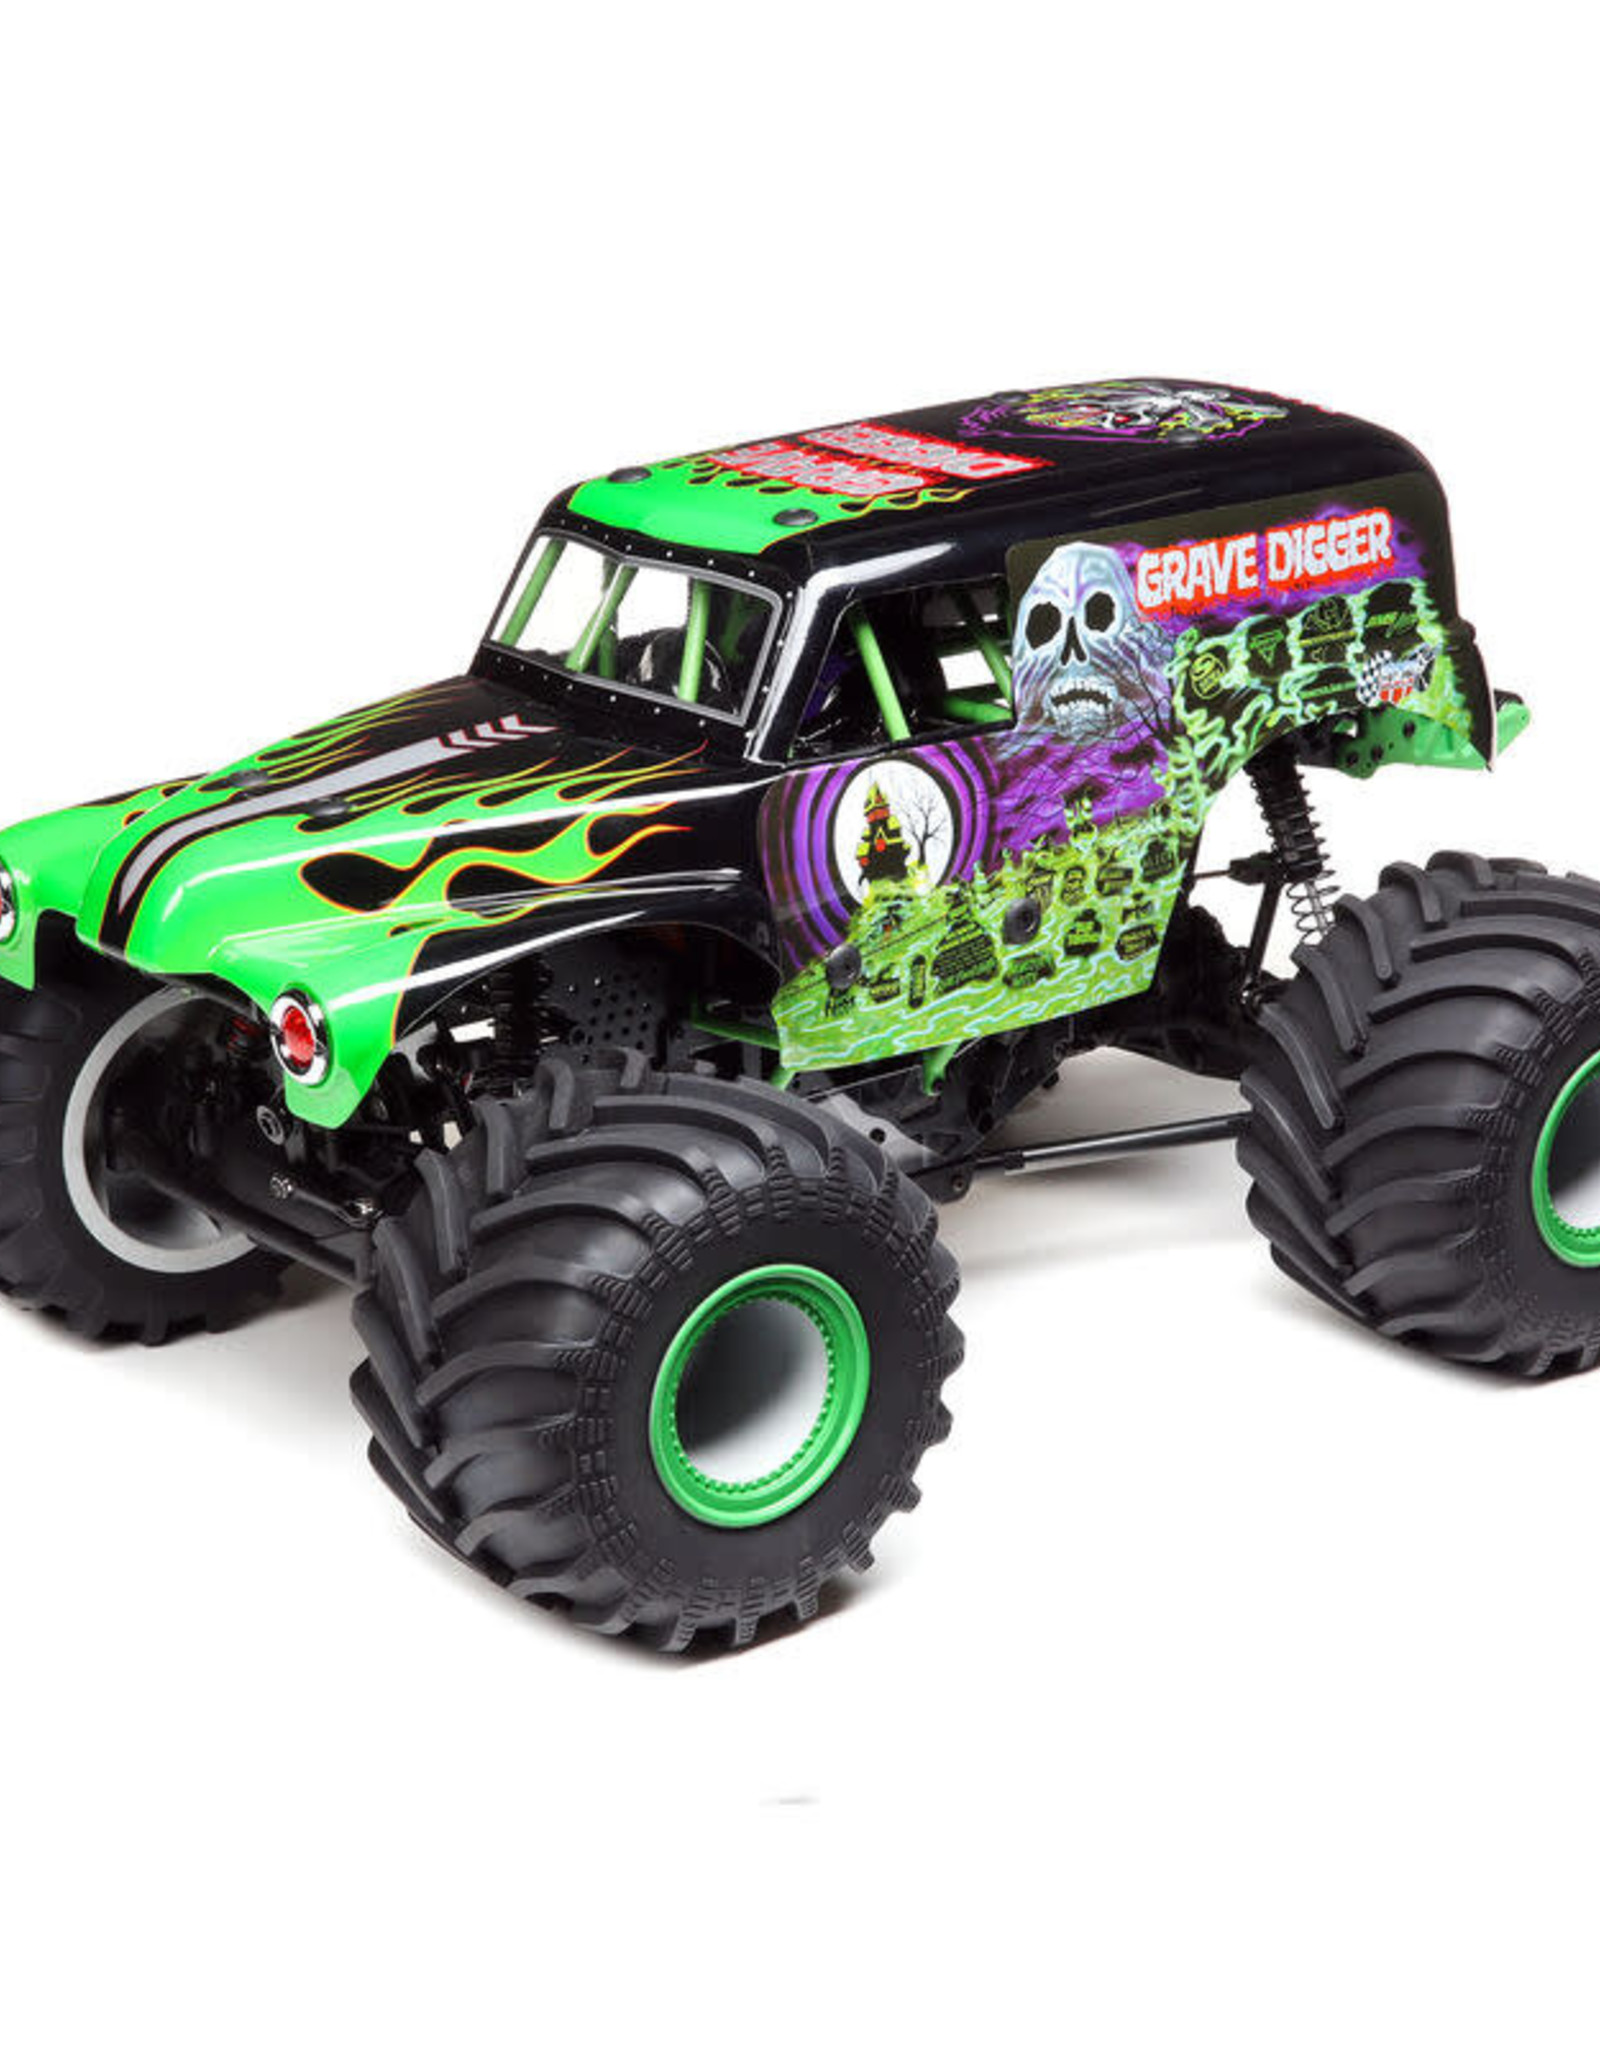 Losi LOS04021T1LMT:4wd Solid Axle Monster Truck, Grave Digger:RTR